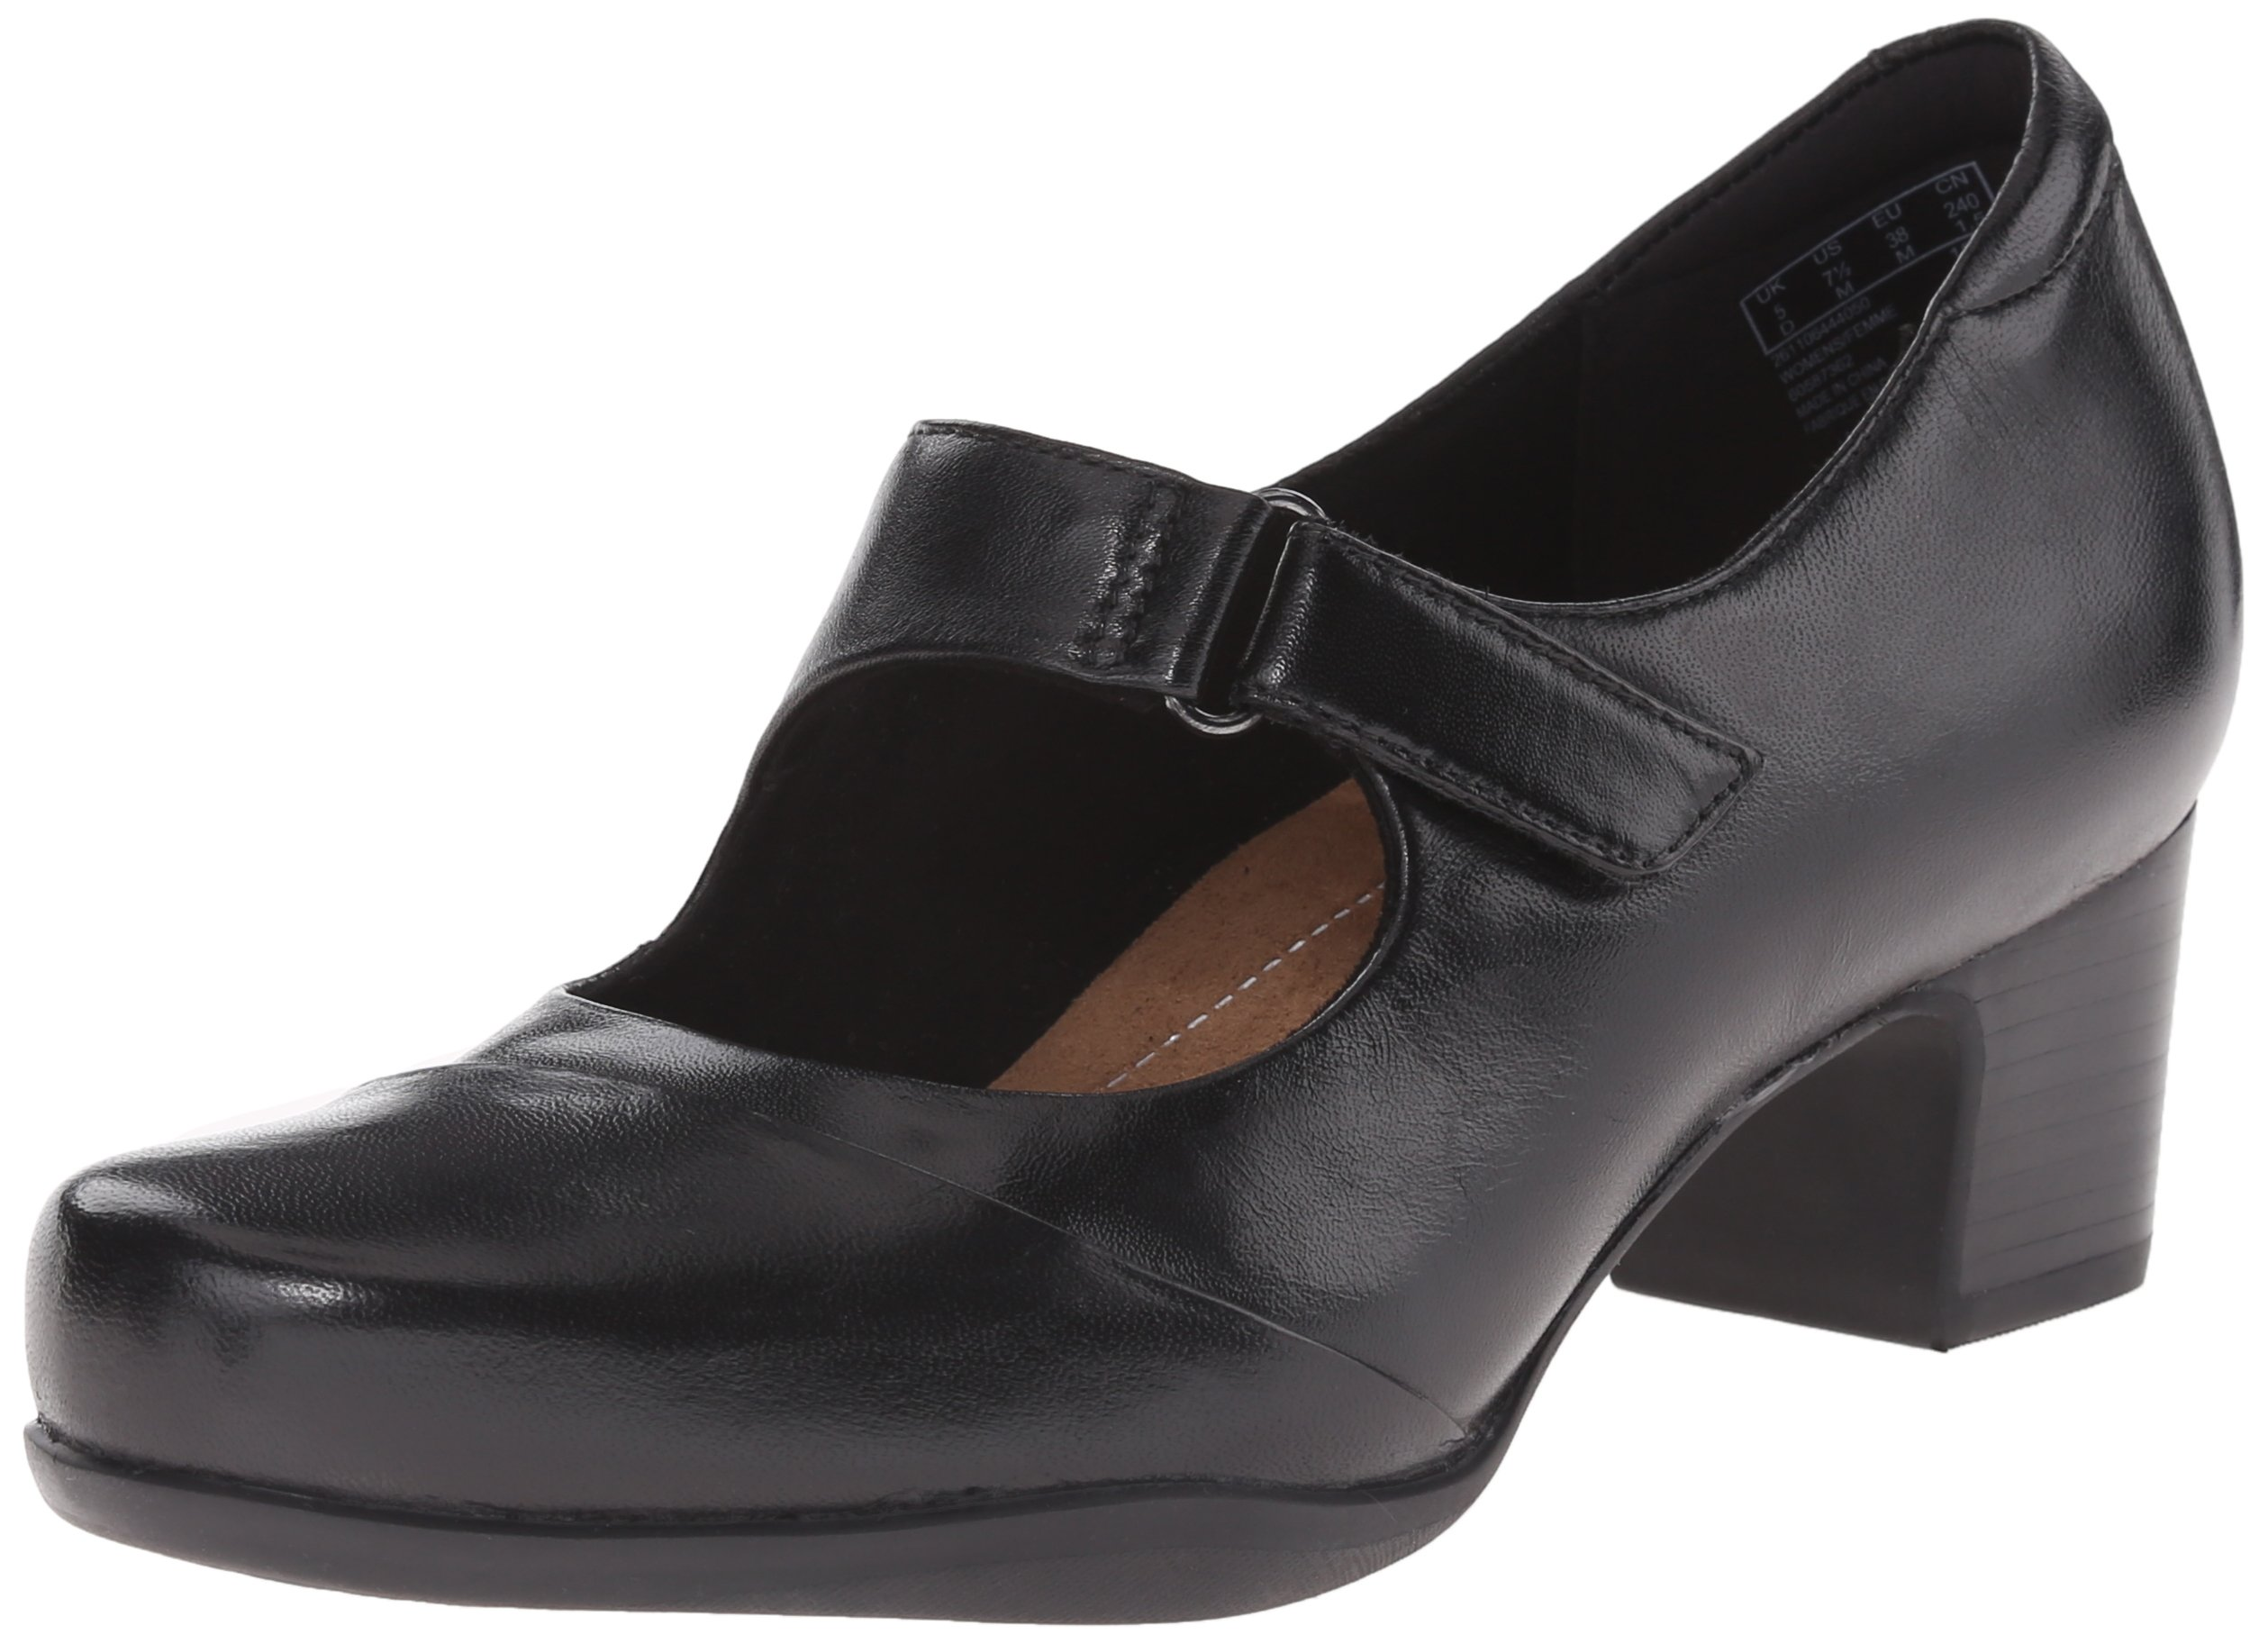 Clarks Women's Rosalyn Wren Pump, Black Leather, 9.5 W US